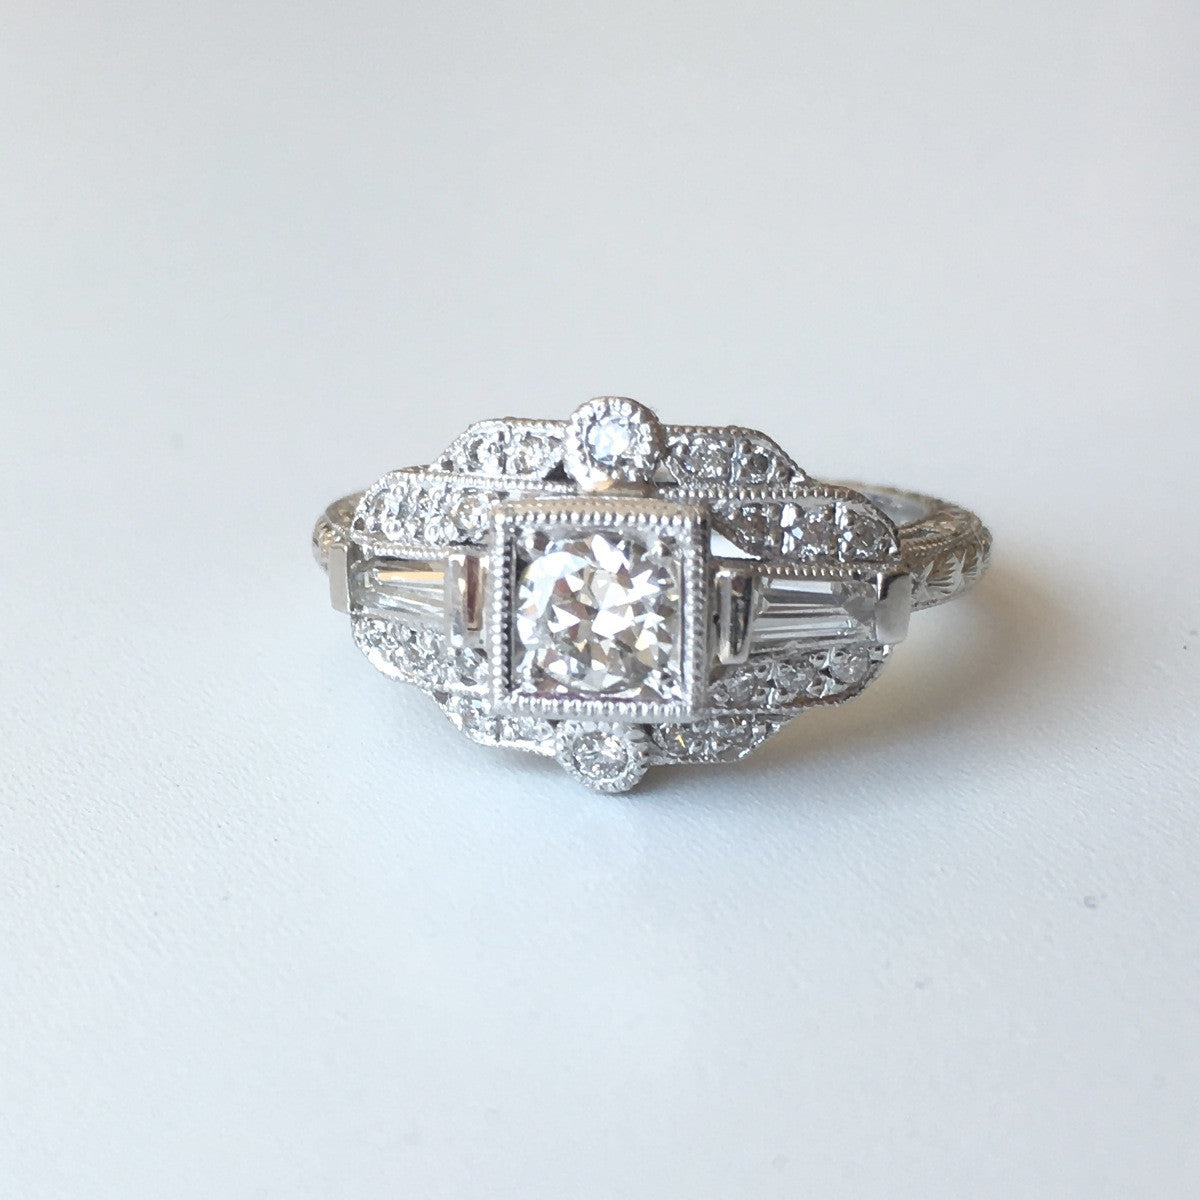 Hand Engraved 18kt Gold Diamond Ring R102